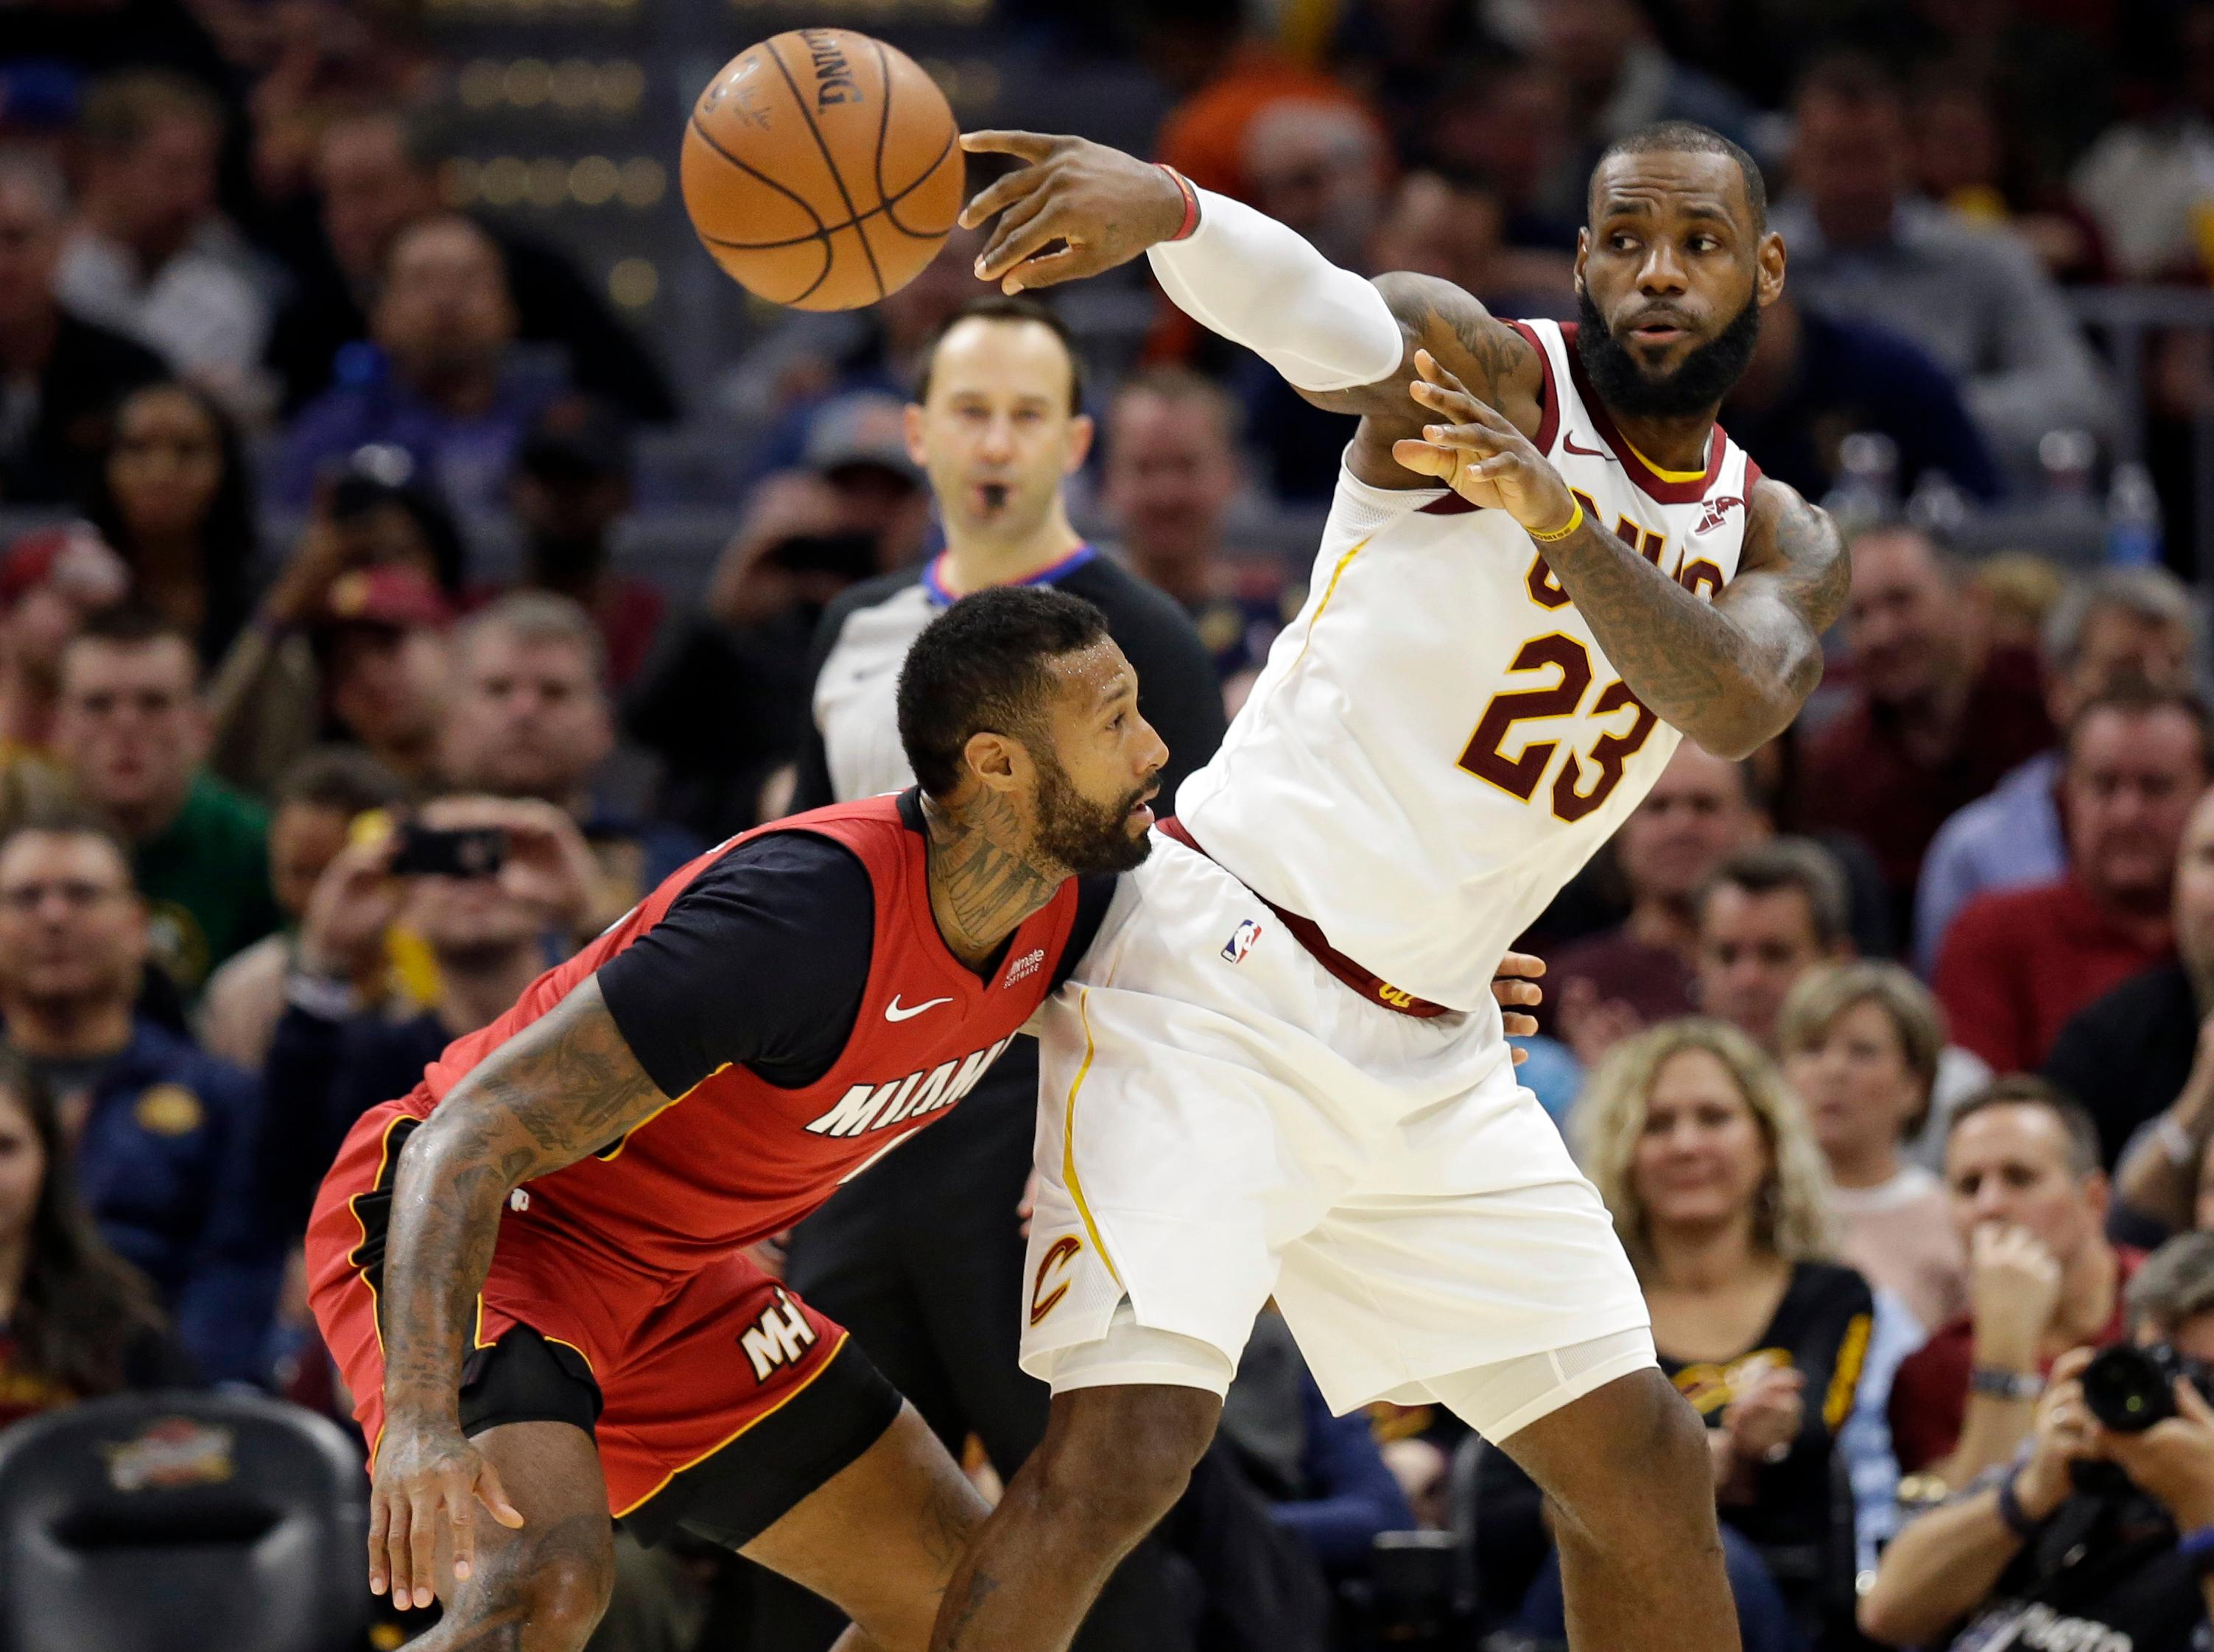 Cleveland Cavaliers' LeBron James (23) passes against Miami Heat's James Johnson (16) in the second half of an NBA basketball game, Tuesday, Nov. 28, 2017, in Cleveland. The Cavaliers won 108-97. (AP Photo/Tony Dejak)